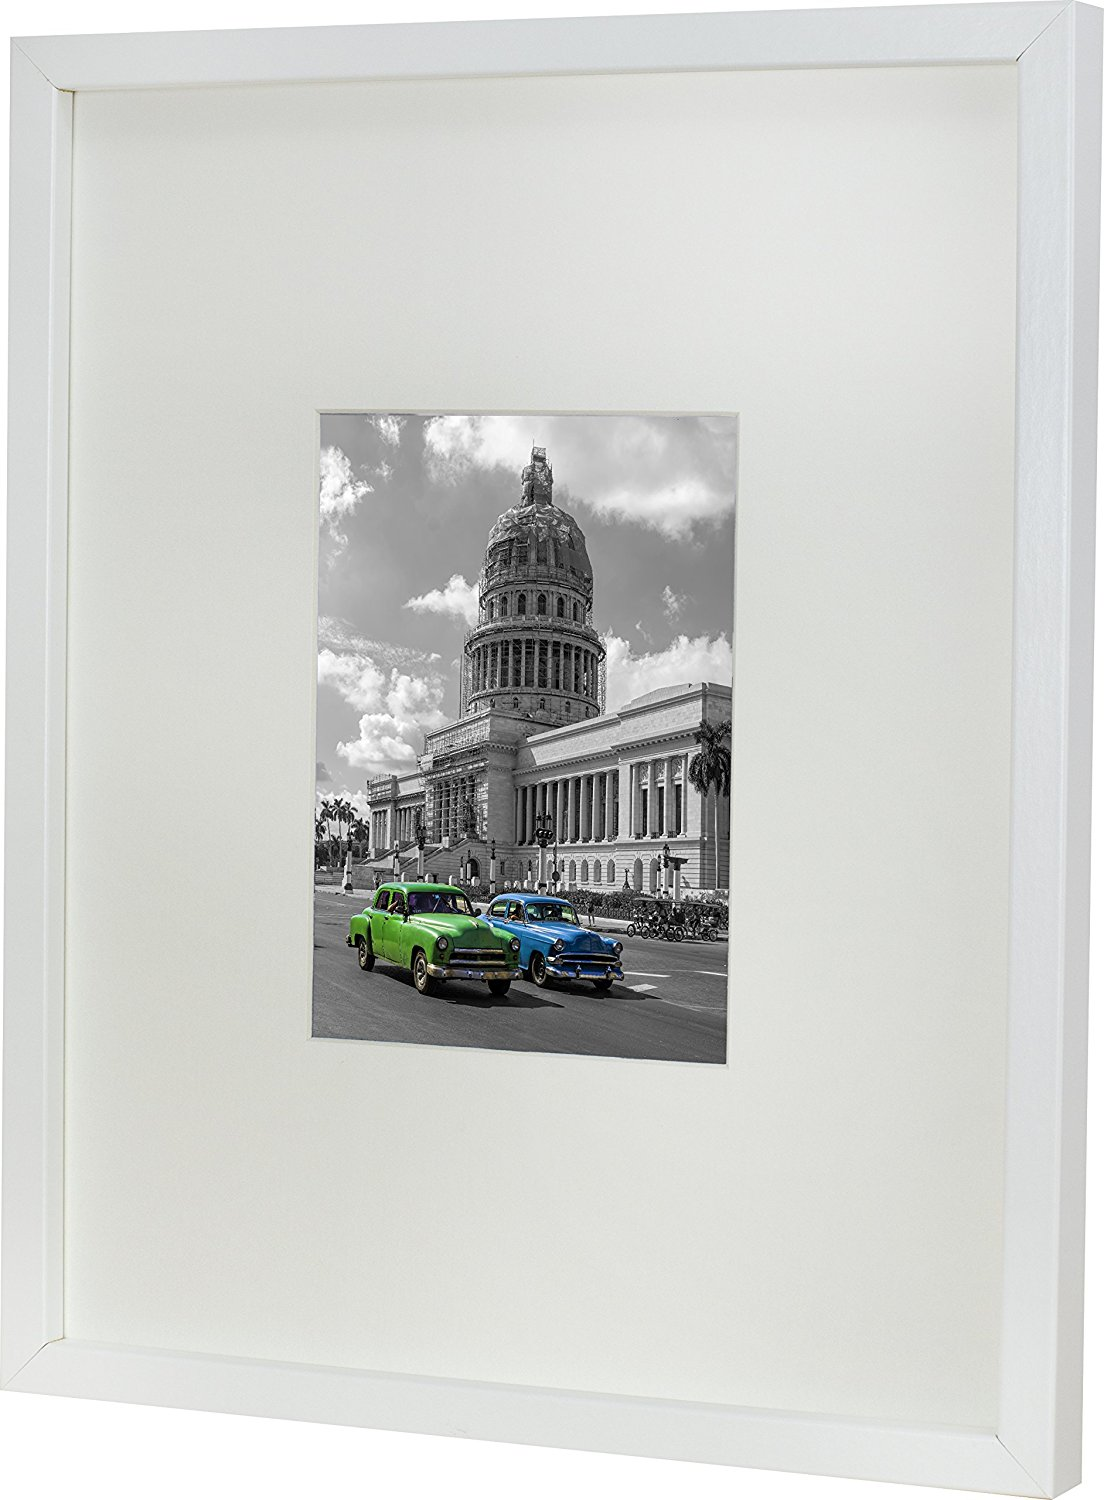 11 x 14-Inch Picture Photo Frame with mount for 5 x 7-Inch photo, WHITE